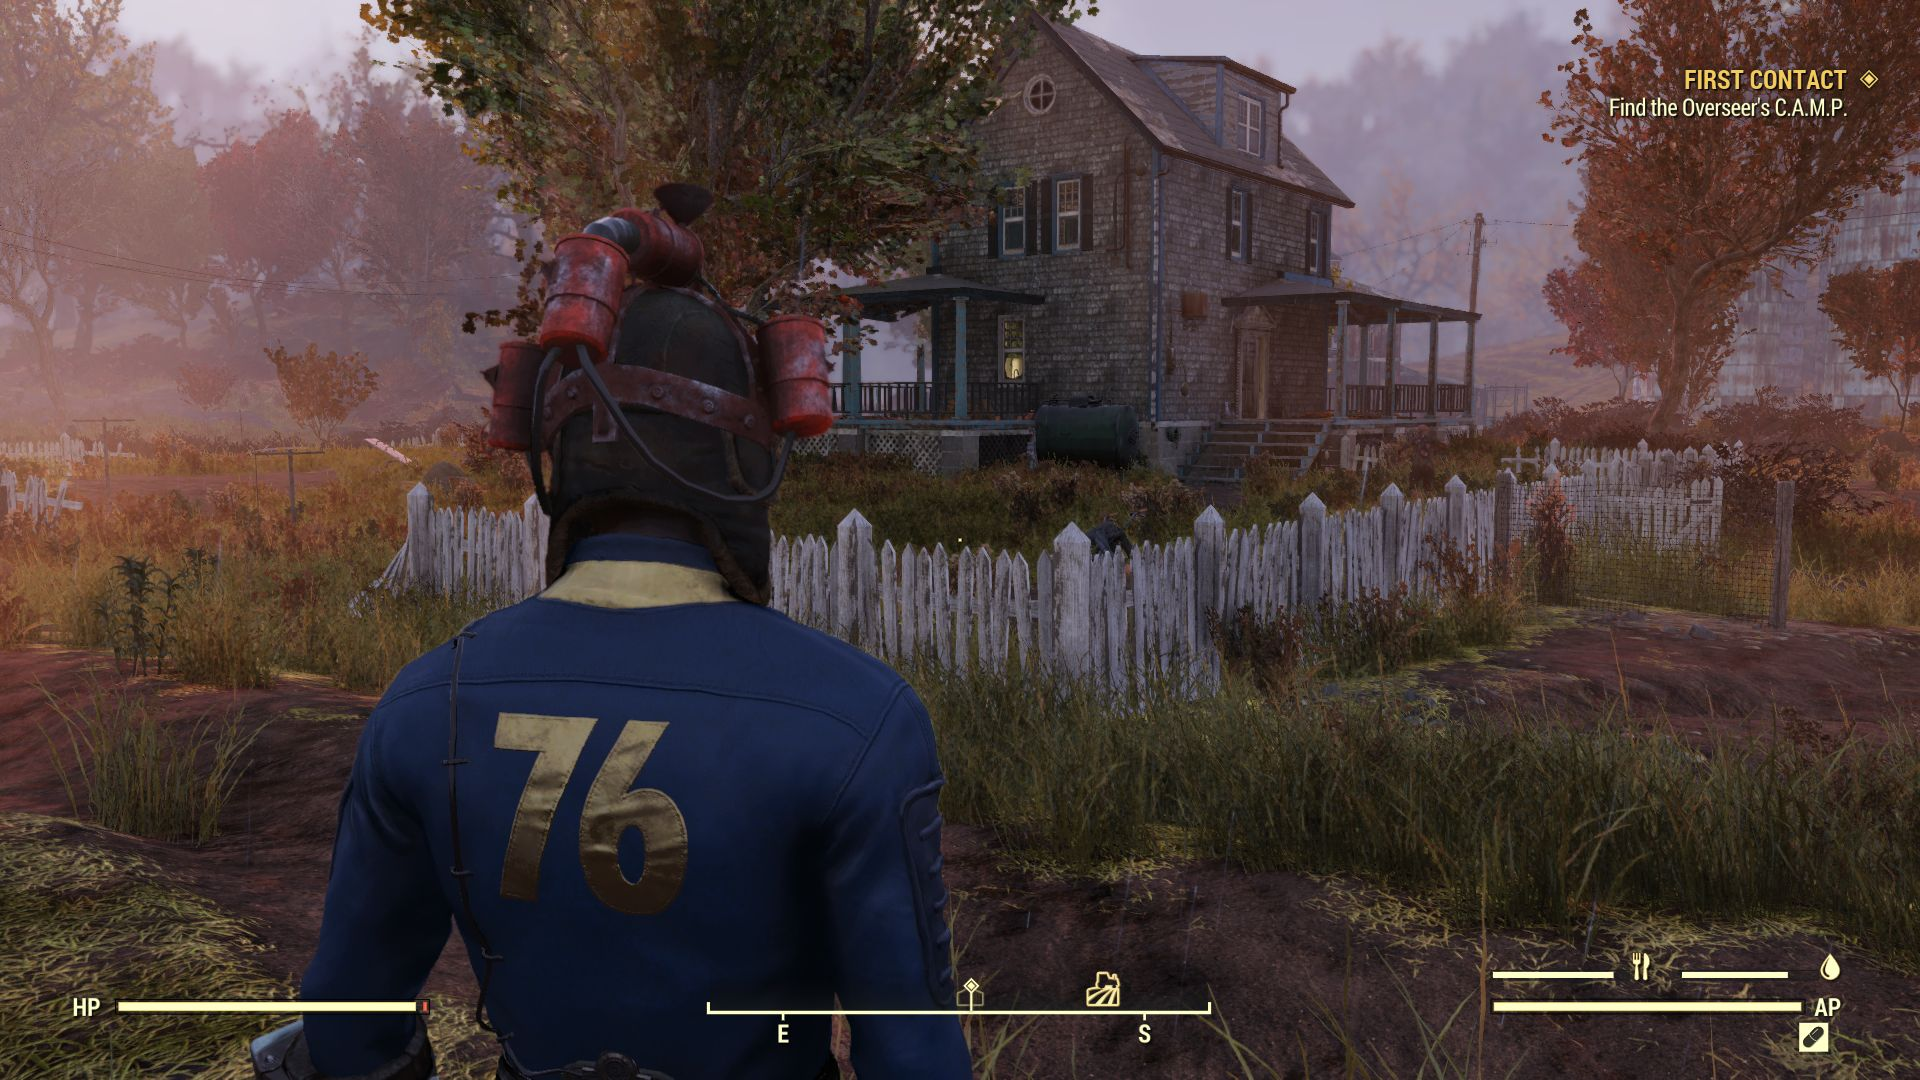 Fallout 76 Notebook and Desktop Benchmarks - NotebookCheck